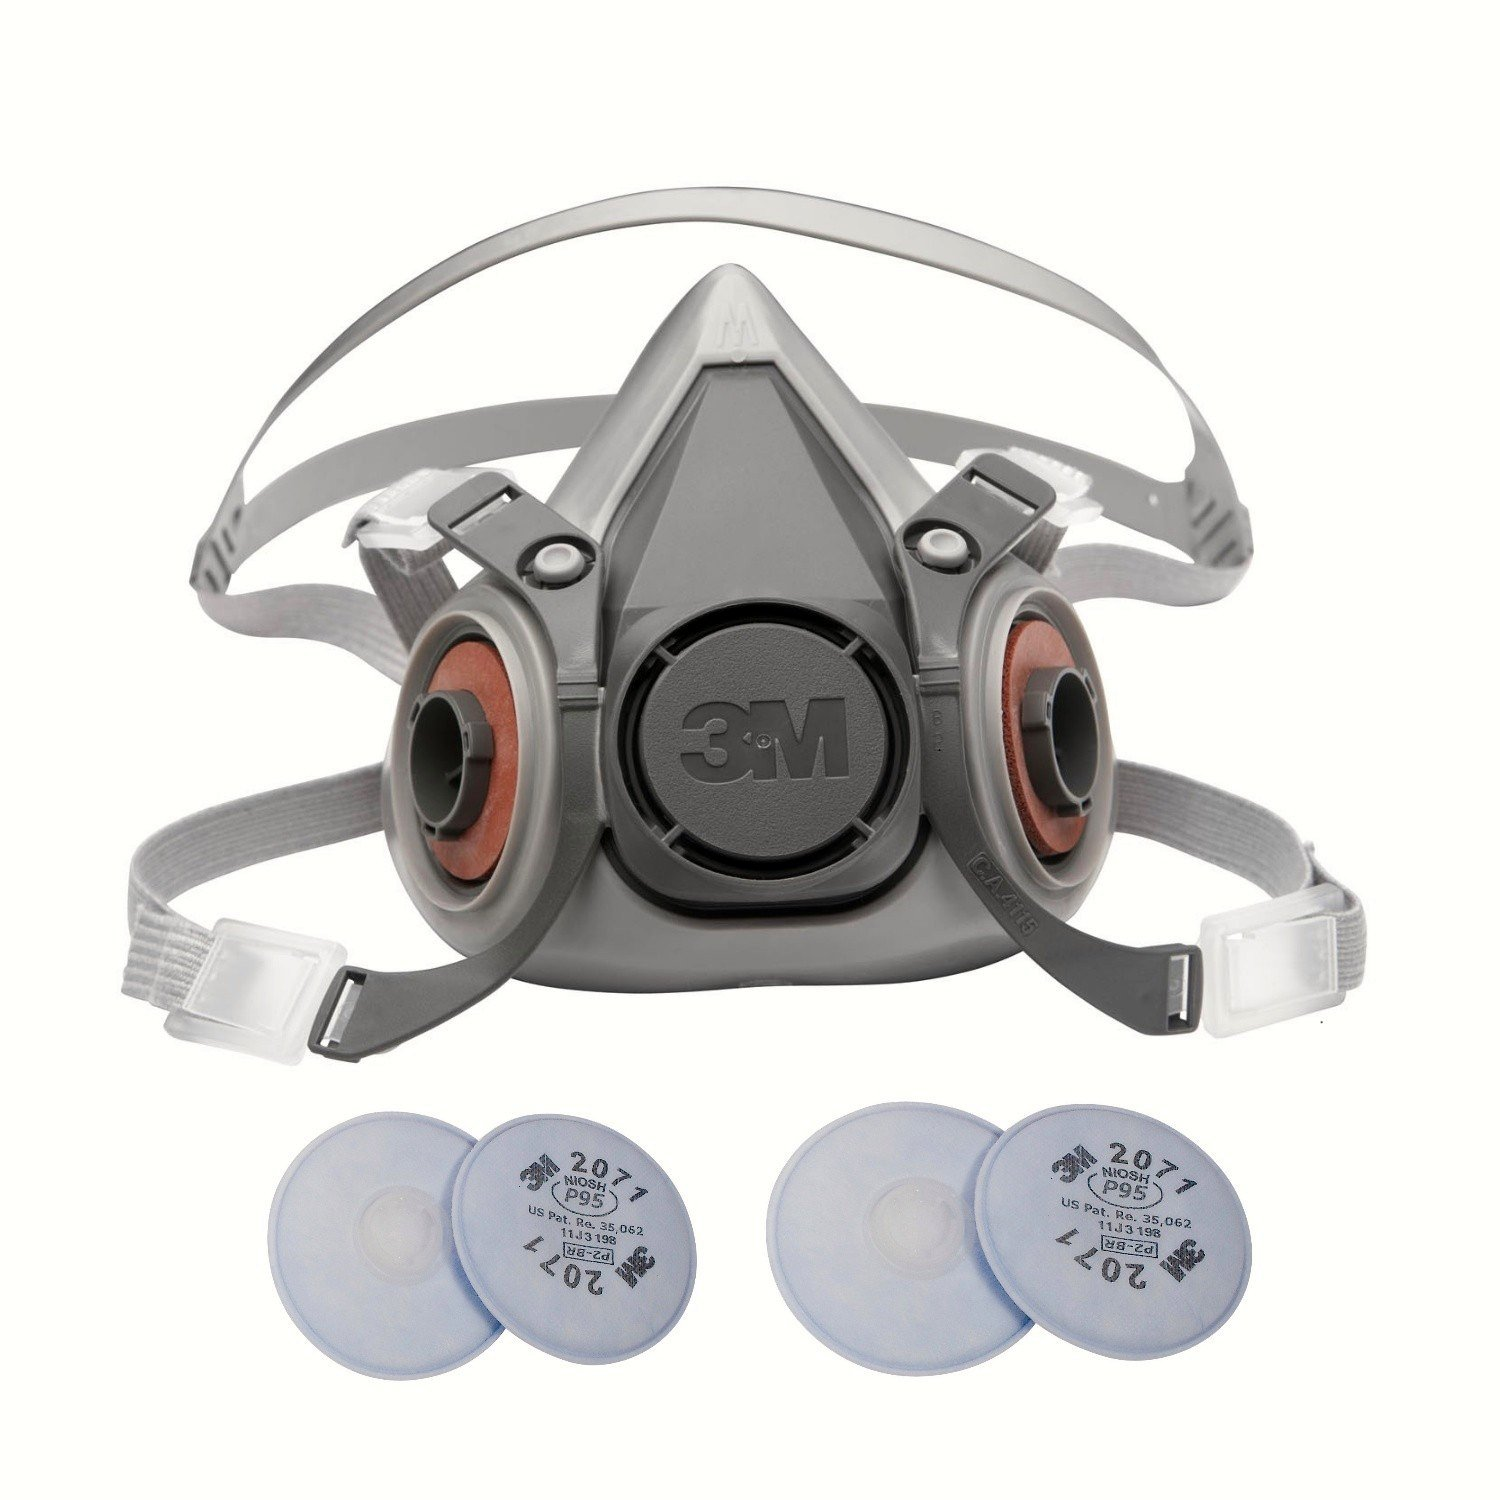 3M 6000 Series Respirator Medium Half Mask Facepiece with Adjustable Straps Size Medium 6200 with 2 Pairs of 3M 2071 Filters